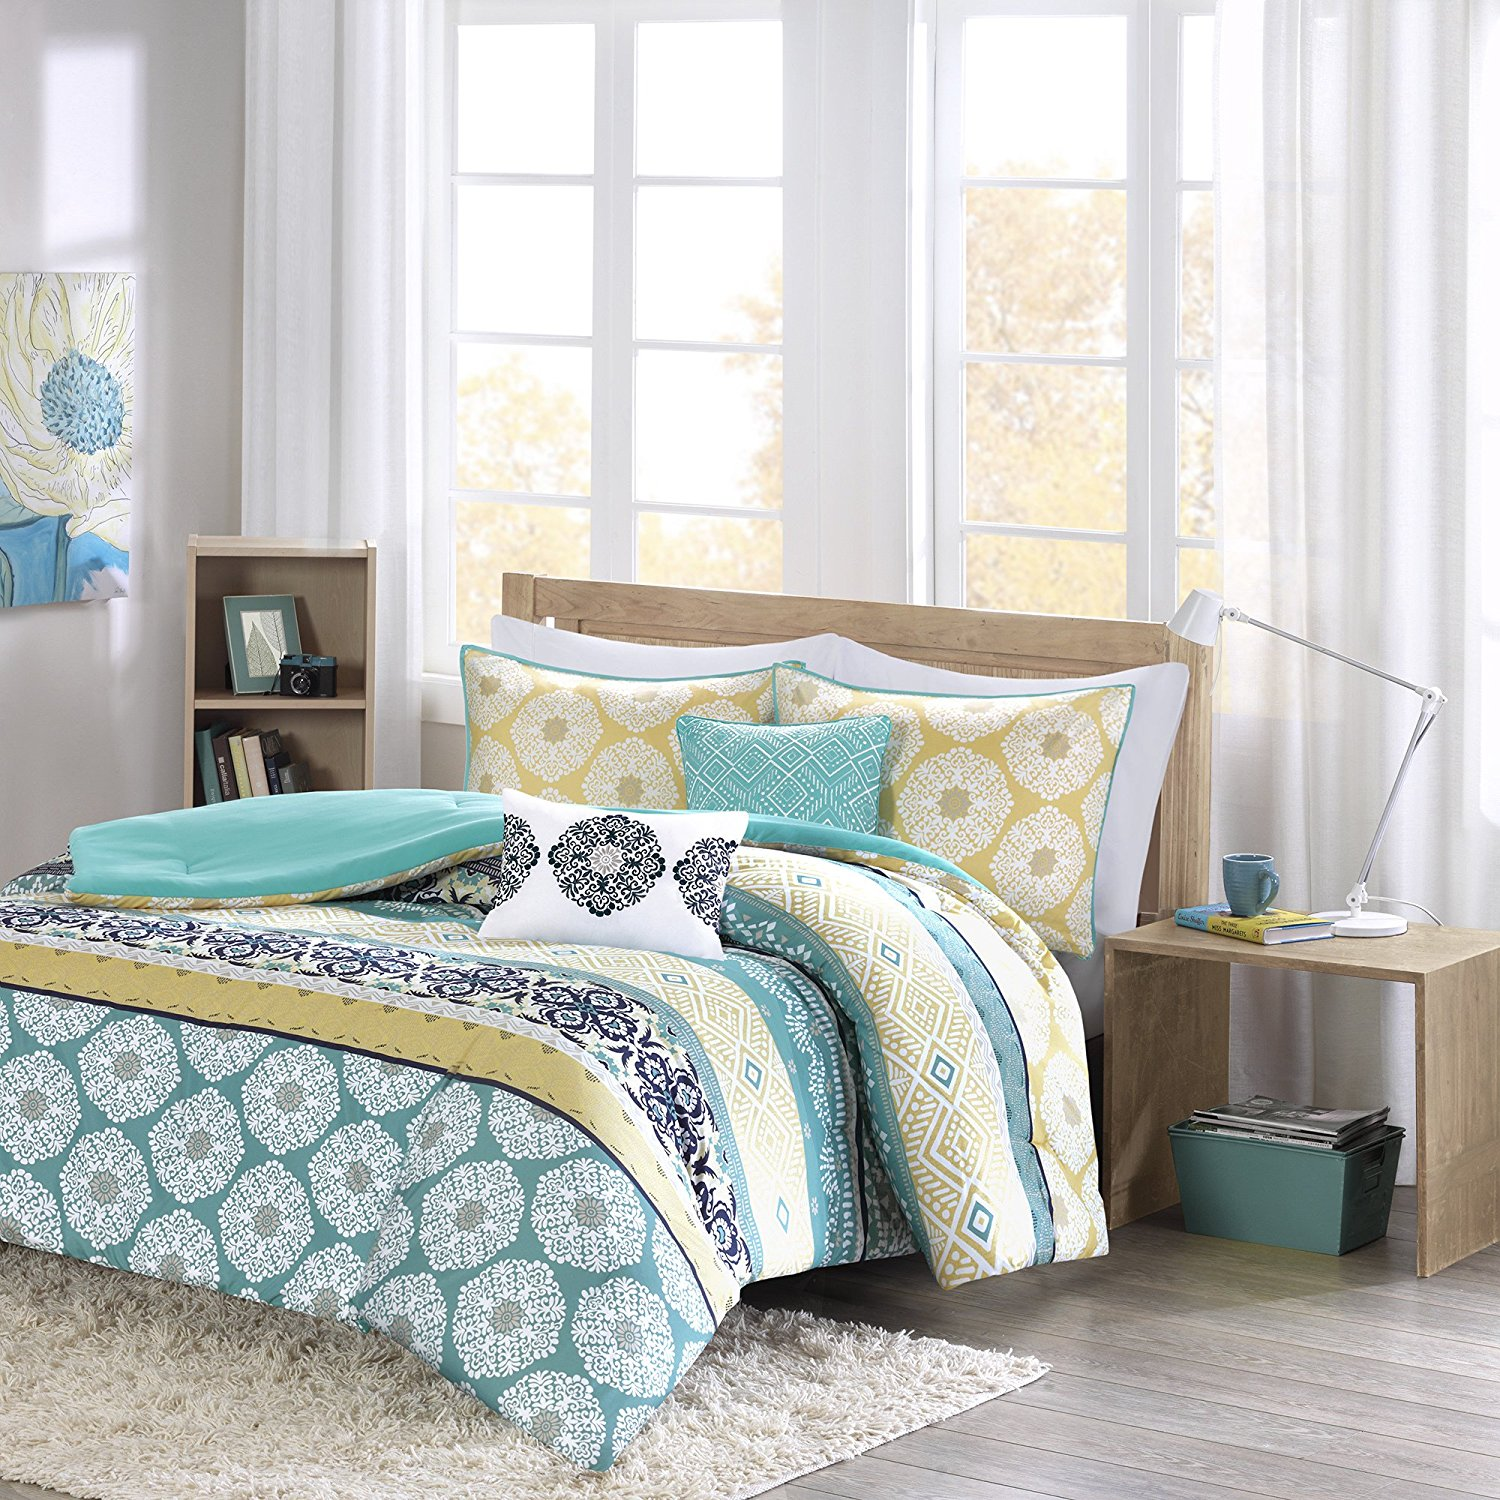 ID & DH Comforter Sets For Teen Girls Full Queen Twin Bedding Kids Aqua Teal Blue Yellow Perfect For Home or Dorm Rooms; Bundle Includes Exclusive Sleep Mask From Designer Home (Twin/Twin XL)